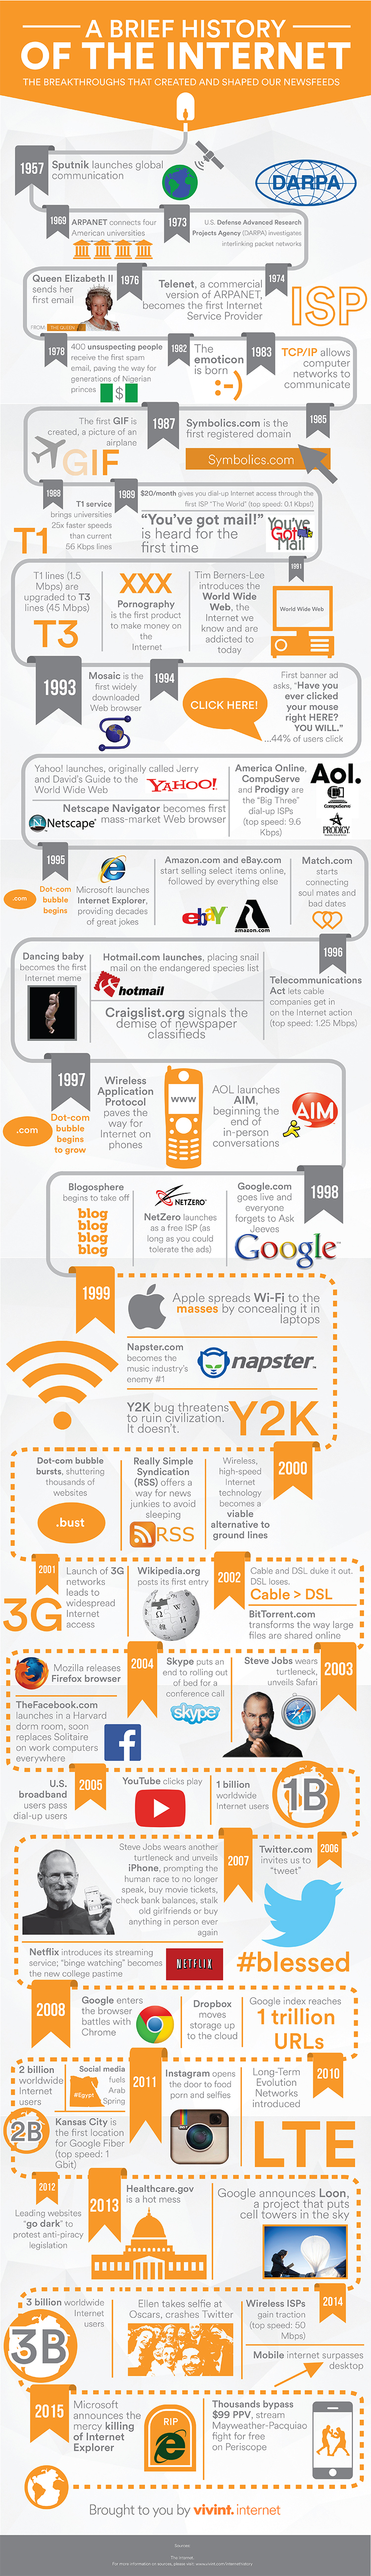 GearDiary Here's the History of the Internet in One Infographic